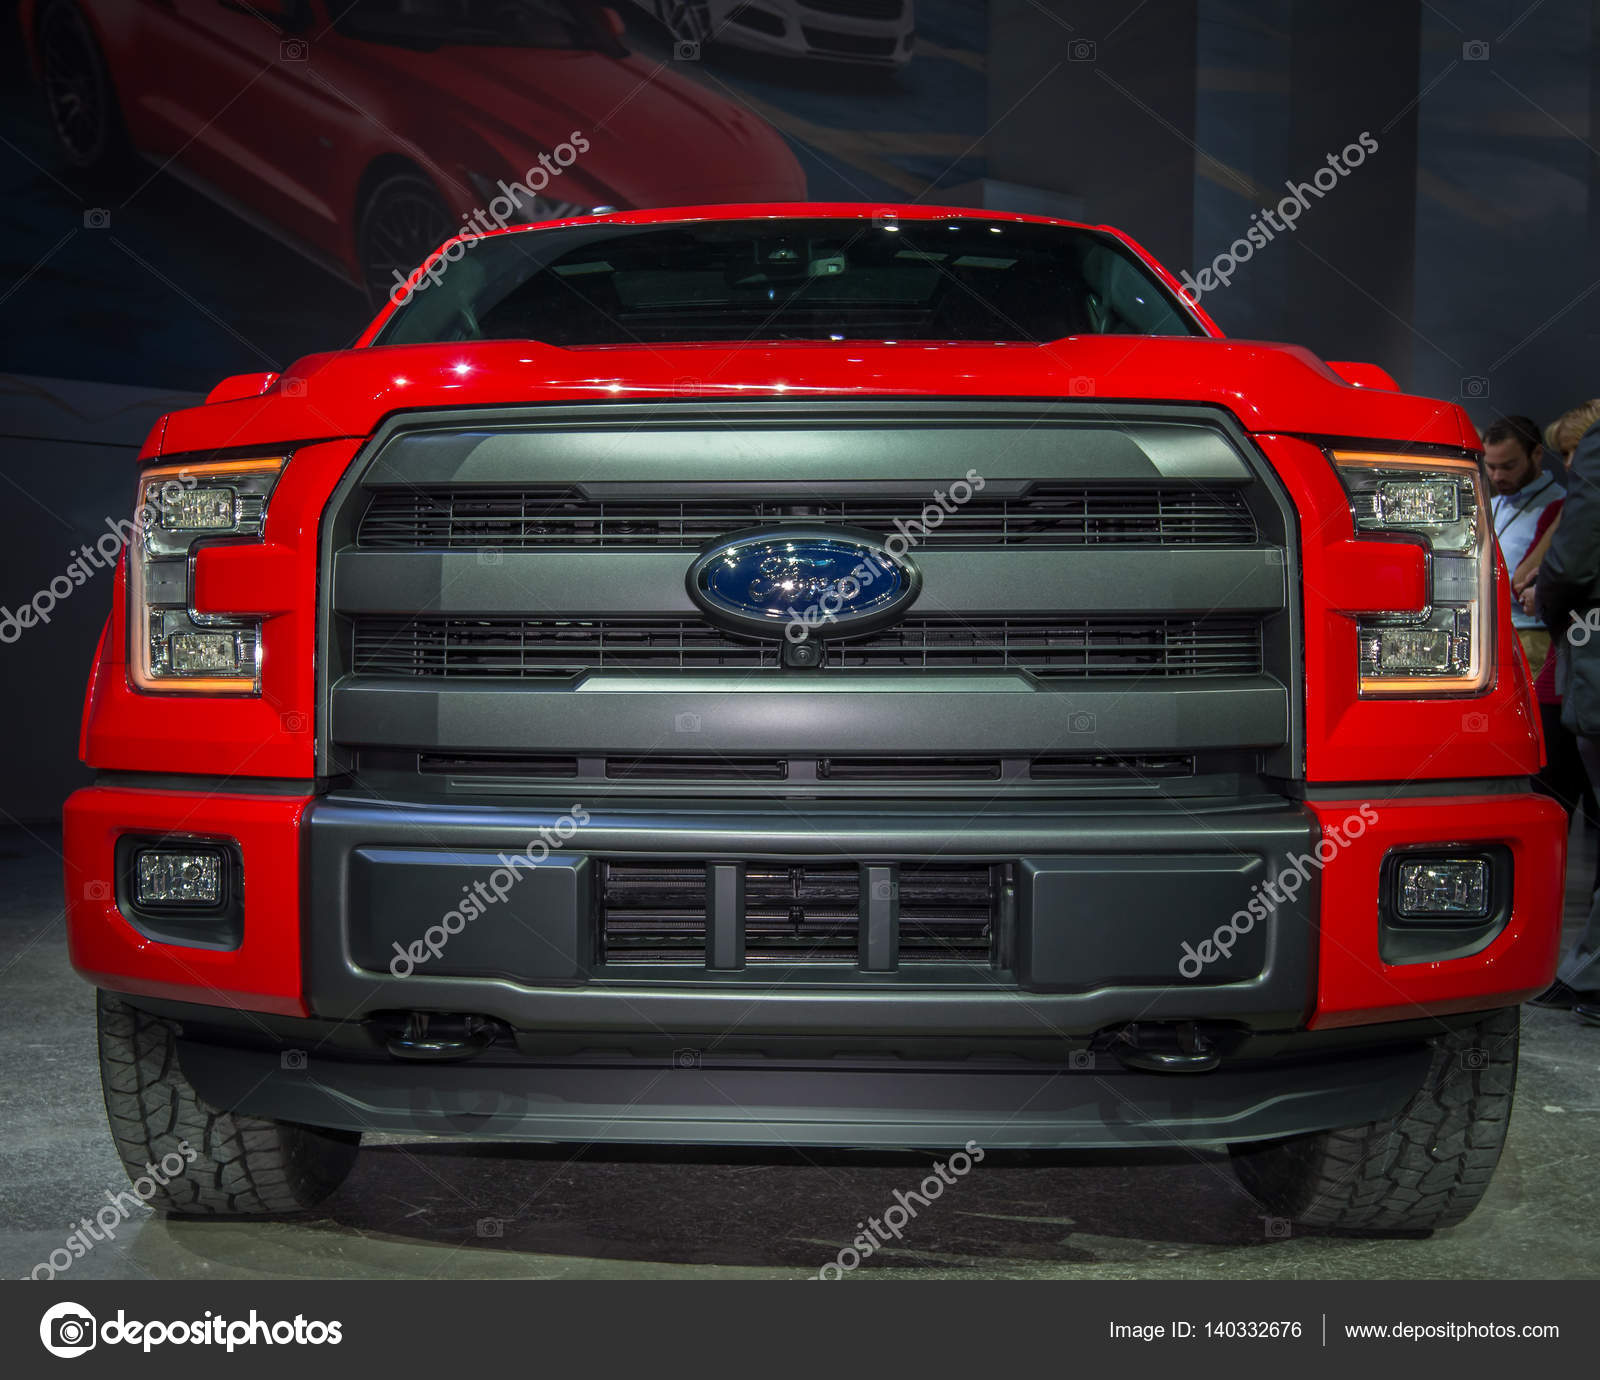 pin you ll to primero high shares full spring burly the have trucks capability in i ford break cars efficient pinterest tech and lead features dios size extreme thanks by